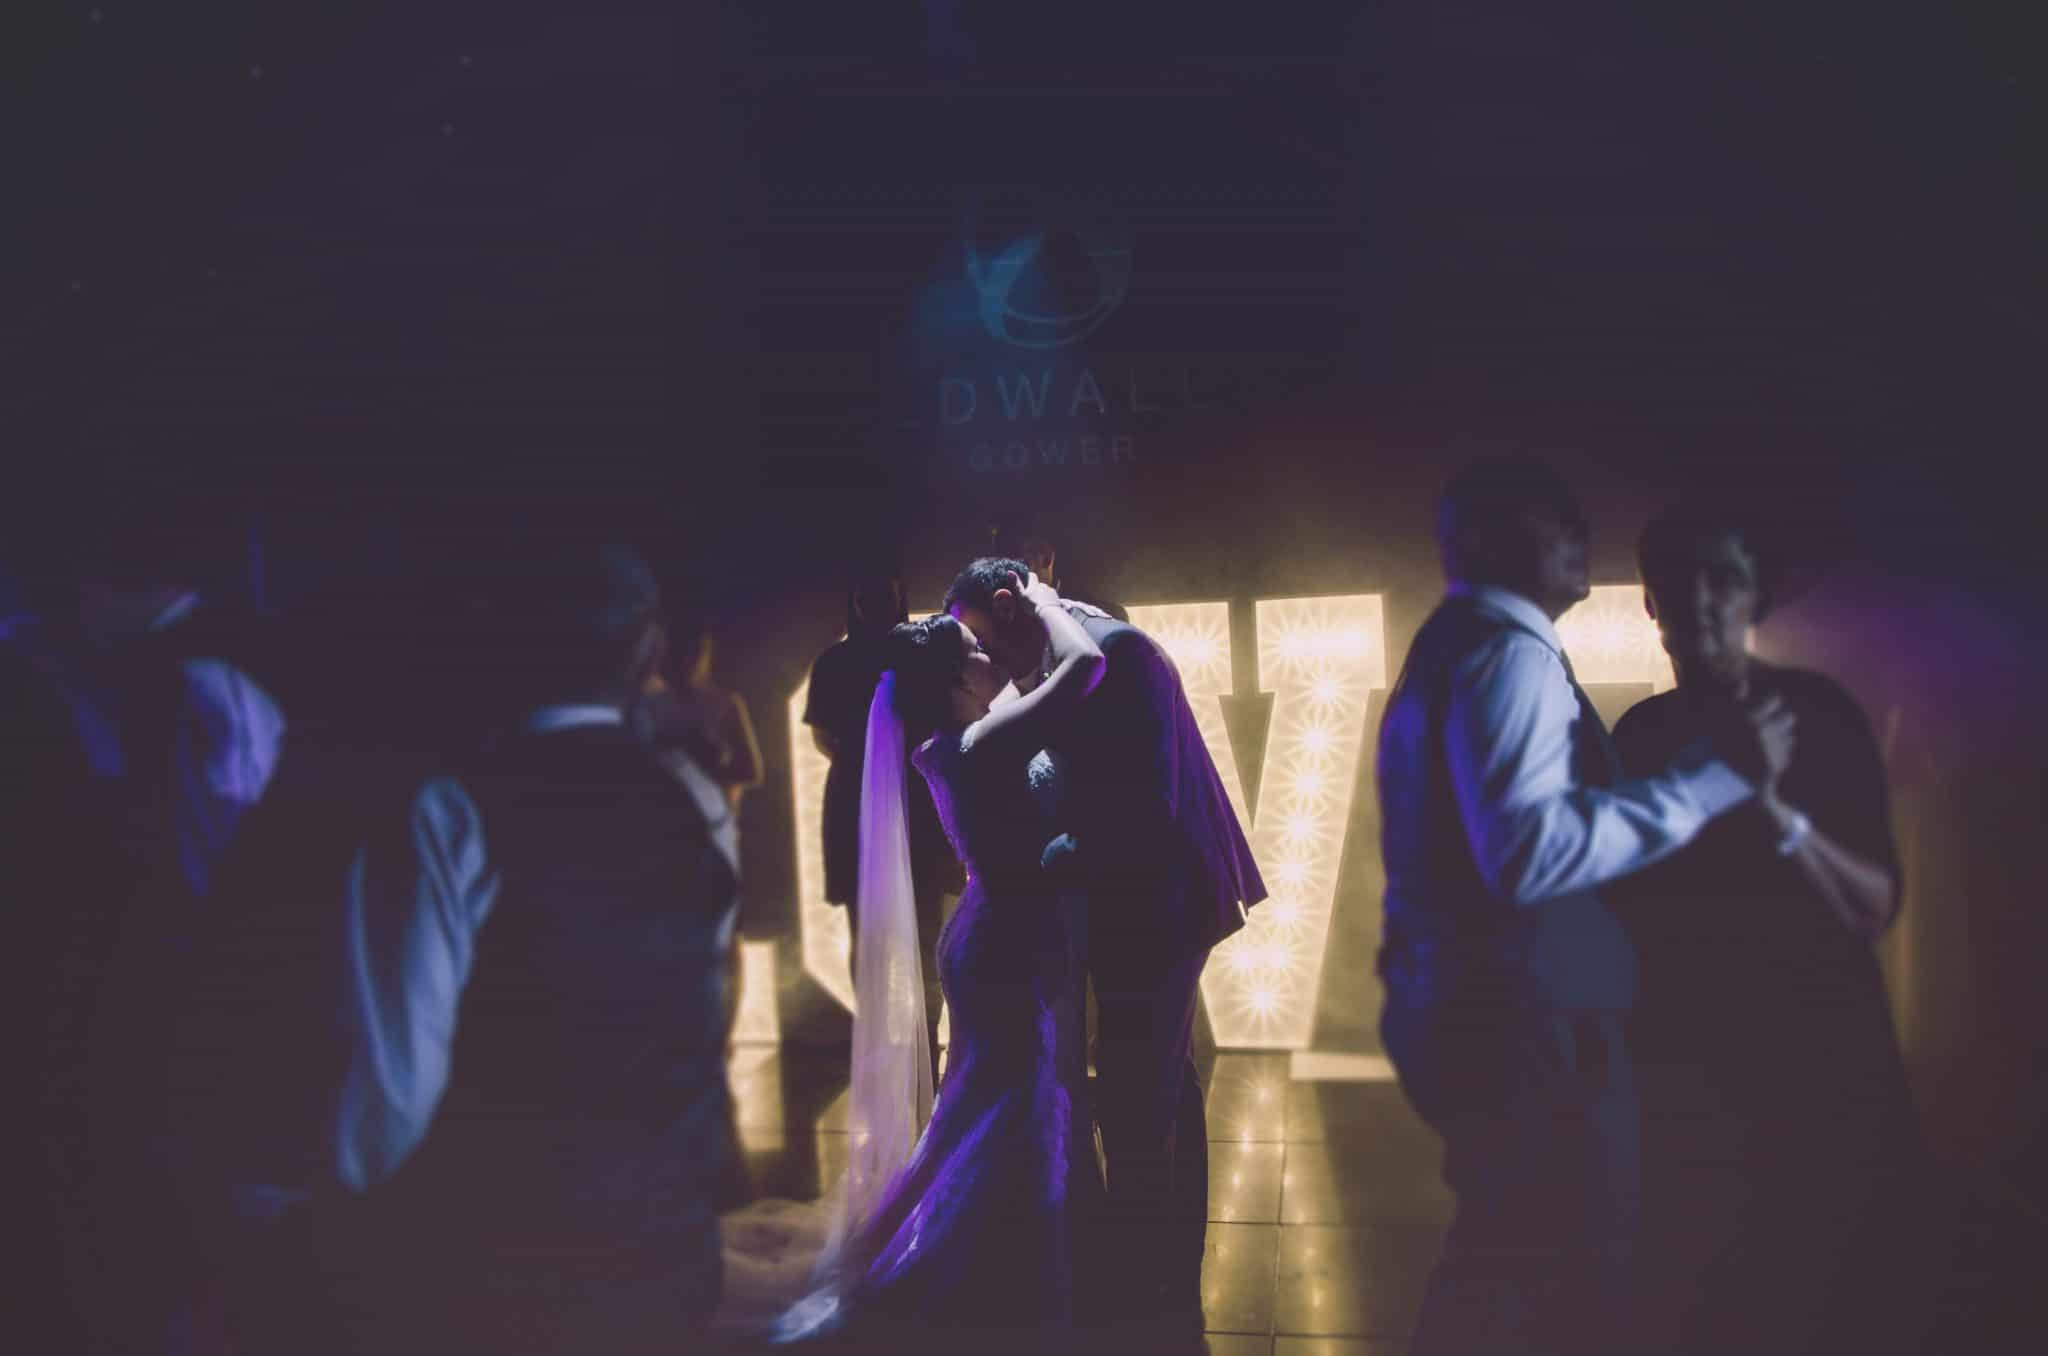 Cardiff wedding photographer - Bride & Groom kiss on a dance floor with a lit up love sign behind them